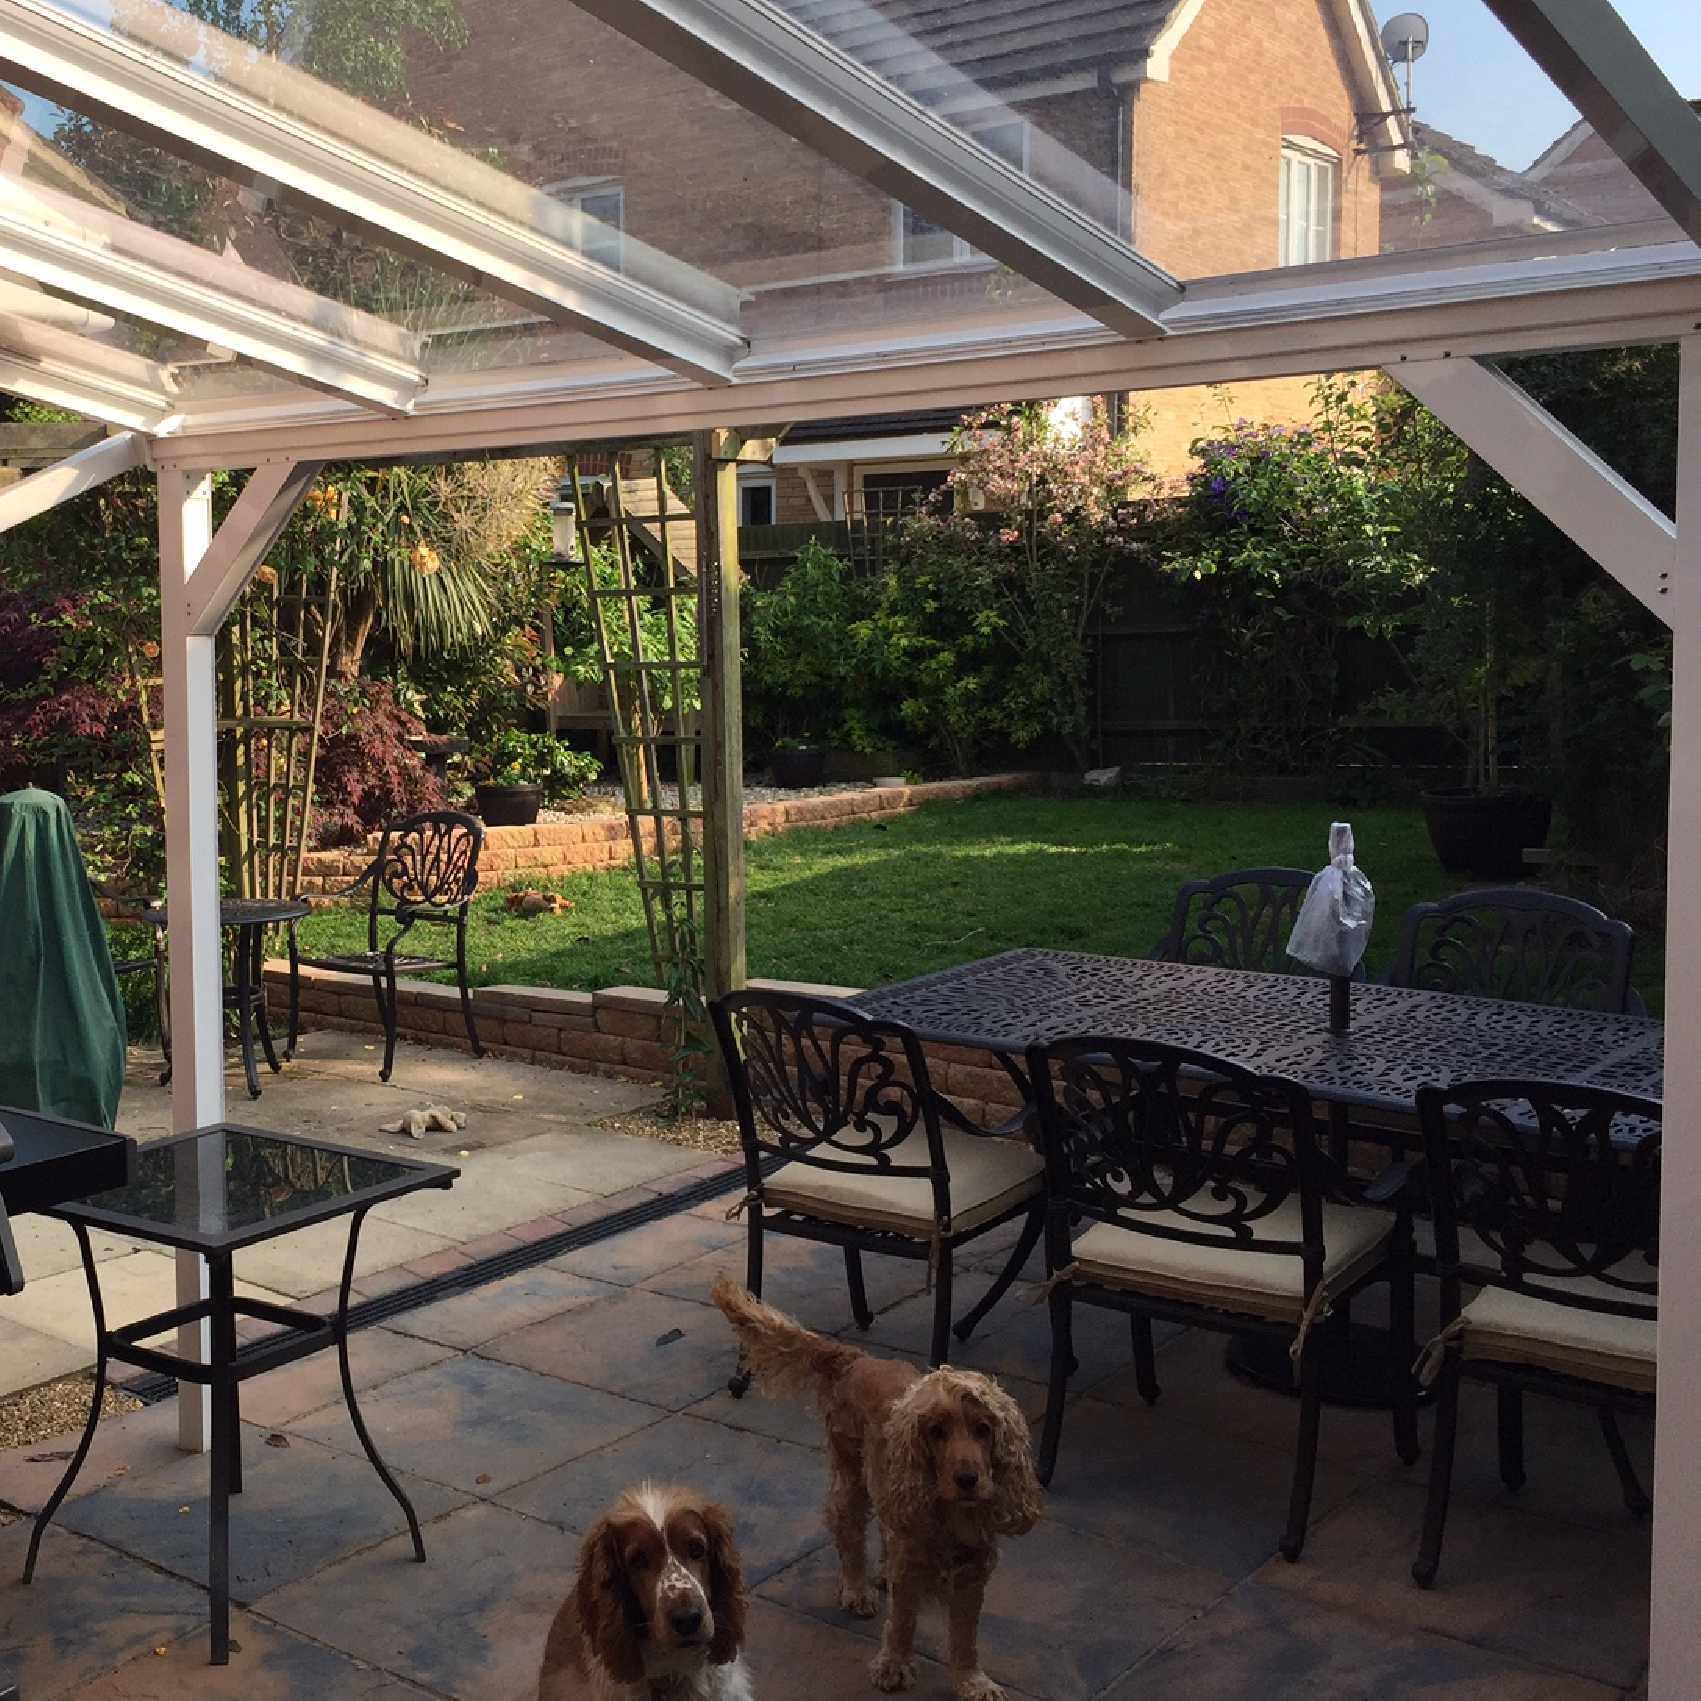 Affordable Omega Smart Lean-To Canopy UNGLAZED for 6mm Glazing - 6.3m (W) x 3.0m (P), (4) Supporting Posts